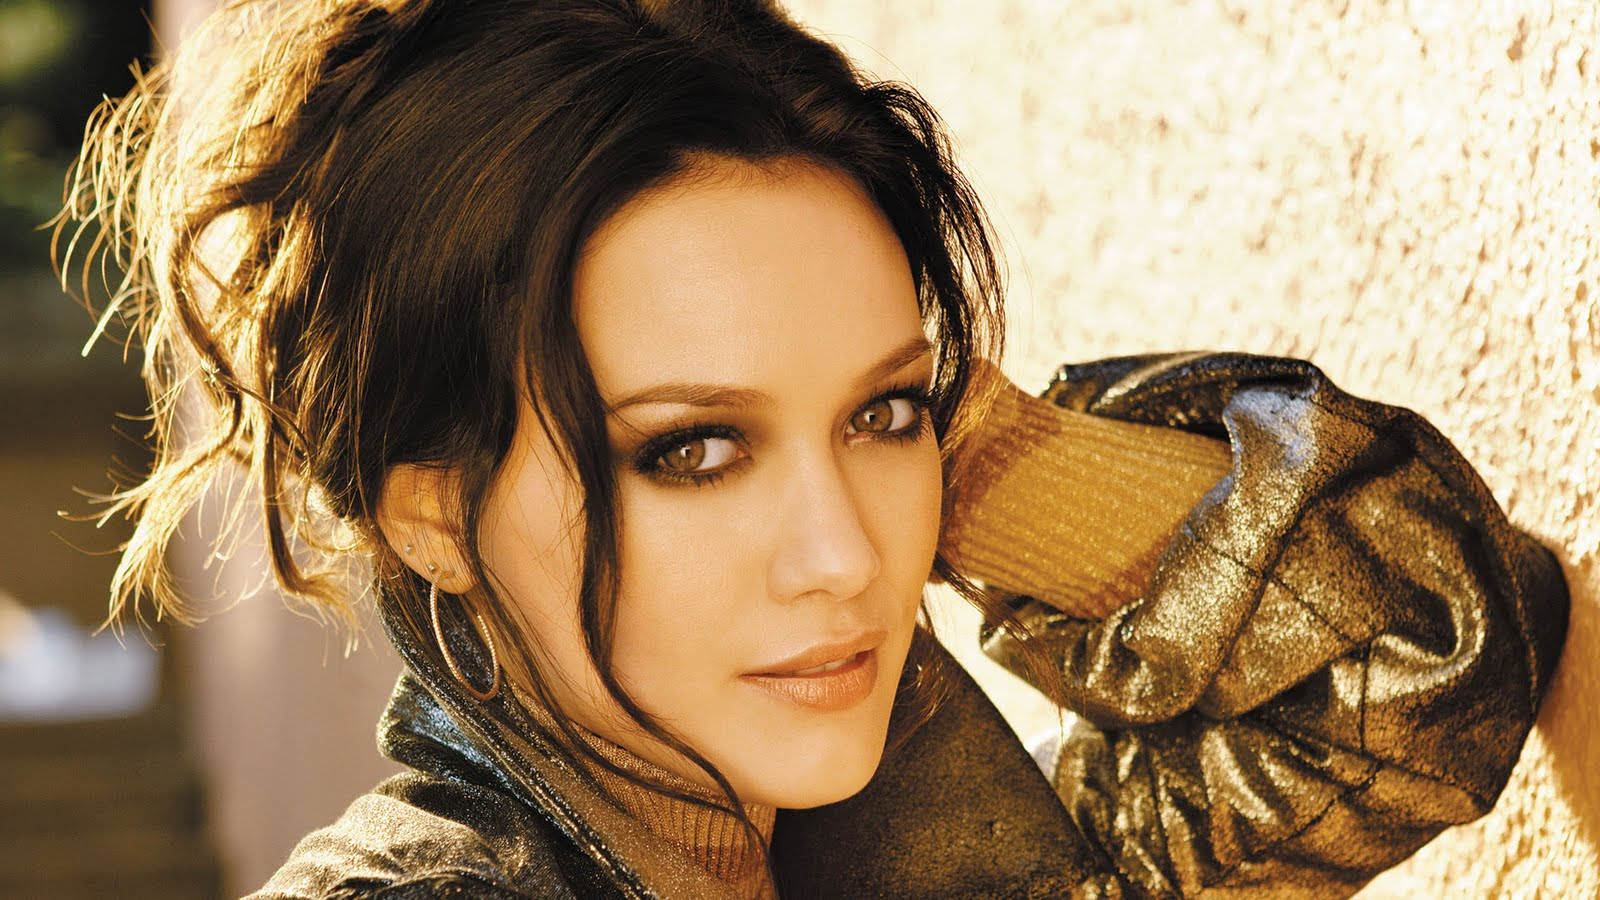 http://2.bp.blogspot.com/-MdyHWir4qOM/Tdf9JbW6WnI/AAAAAAAAA5E/Ox2mV4h4eDI/s1600/hilary-duff-backgrounds-wallpapers.jpg